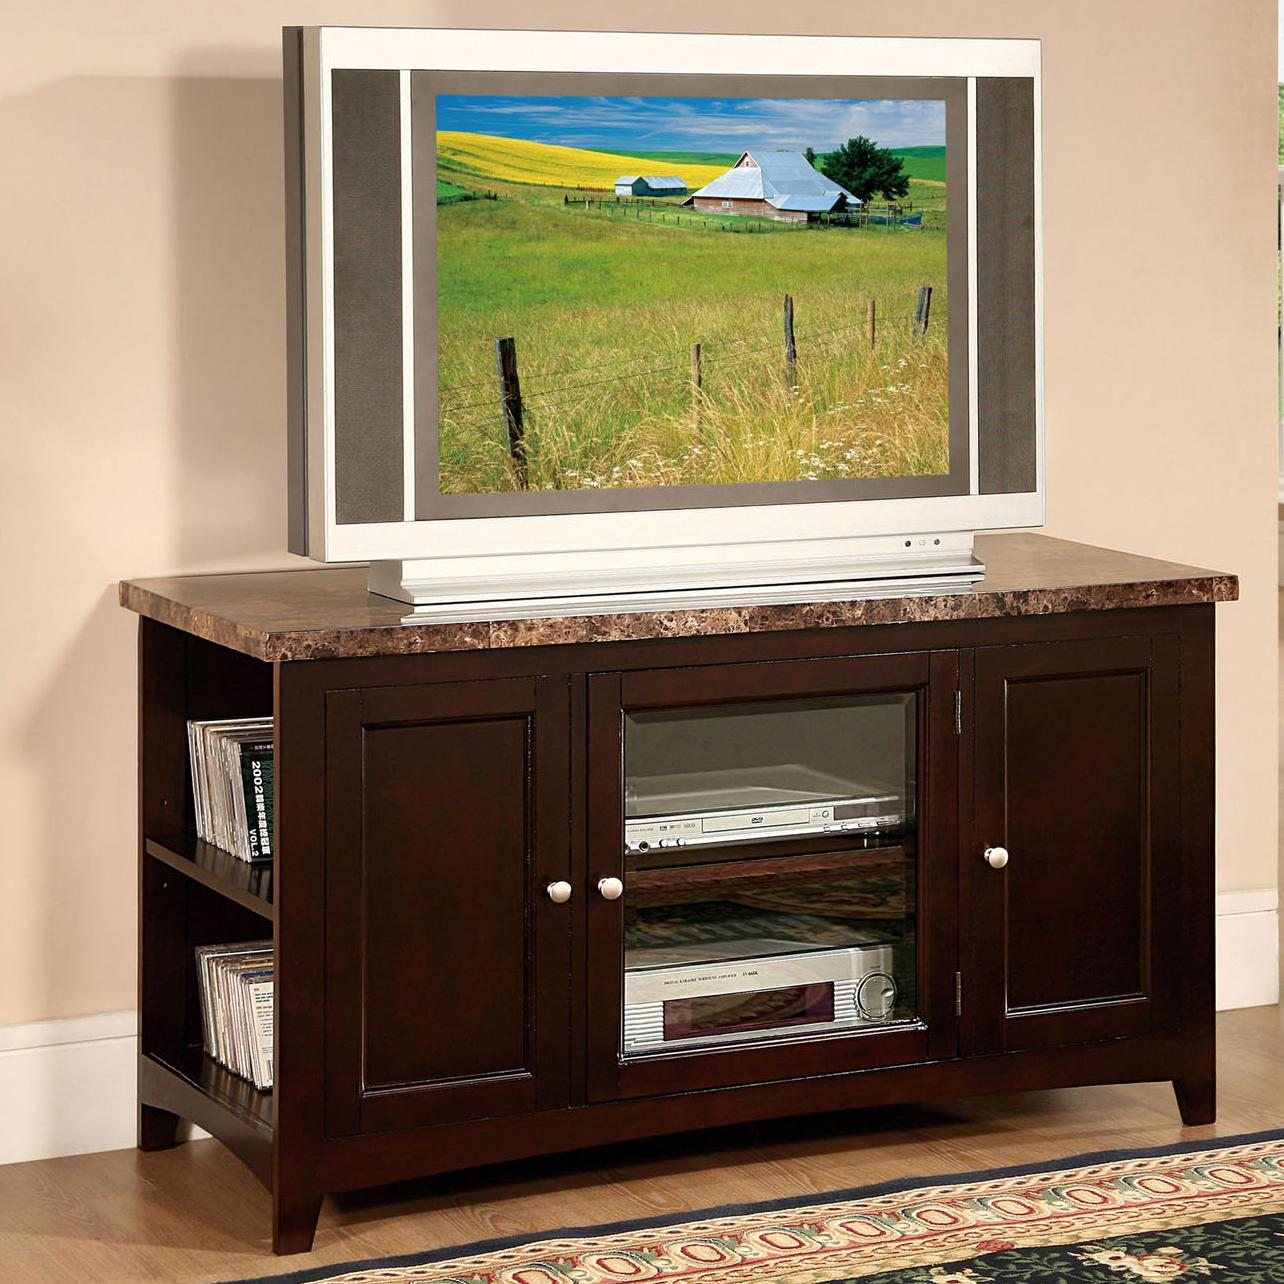 Acme Furniture Finely TV Stand W/Faux Marble Top - Item Number: 91002